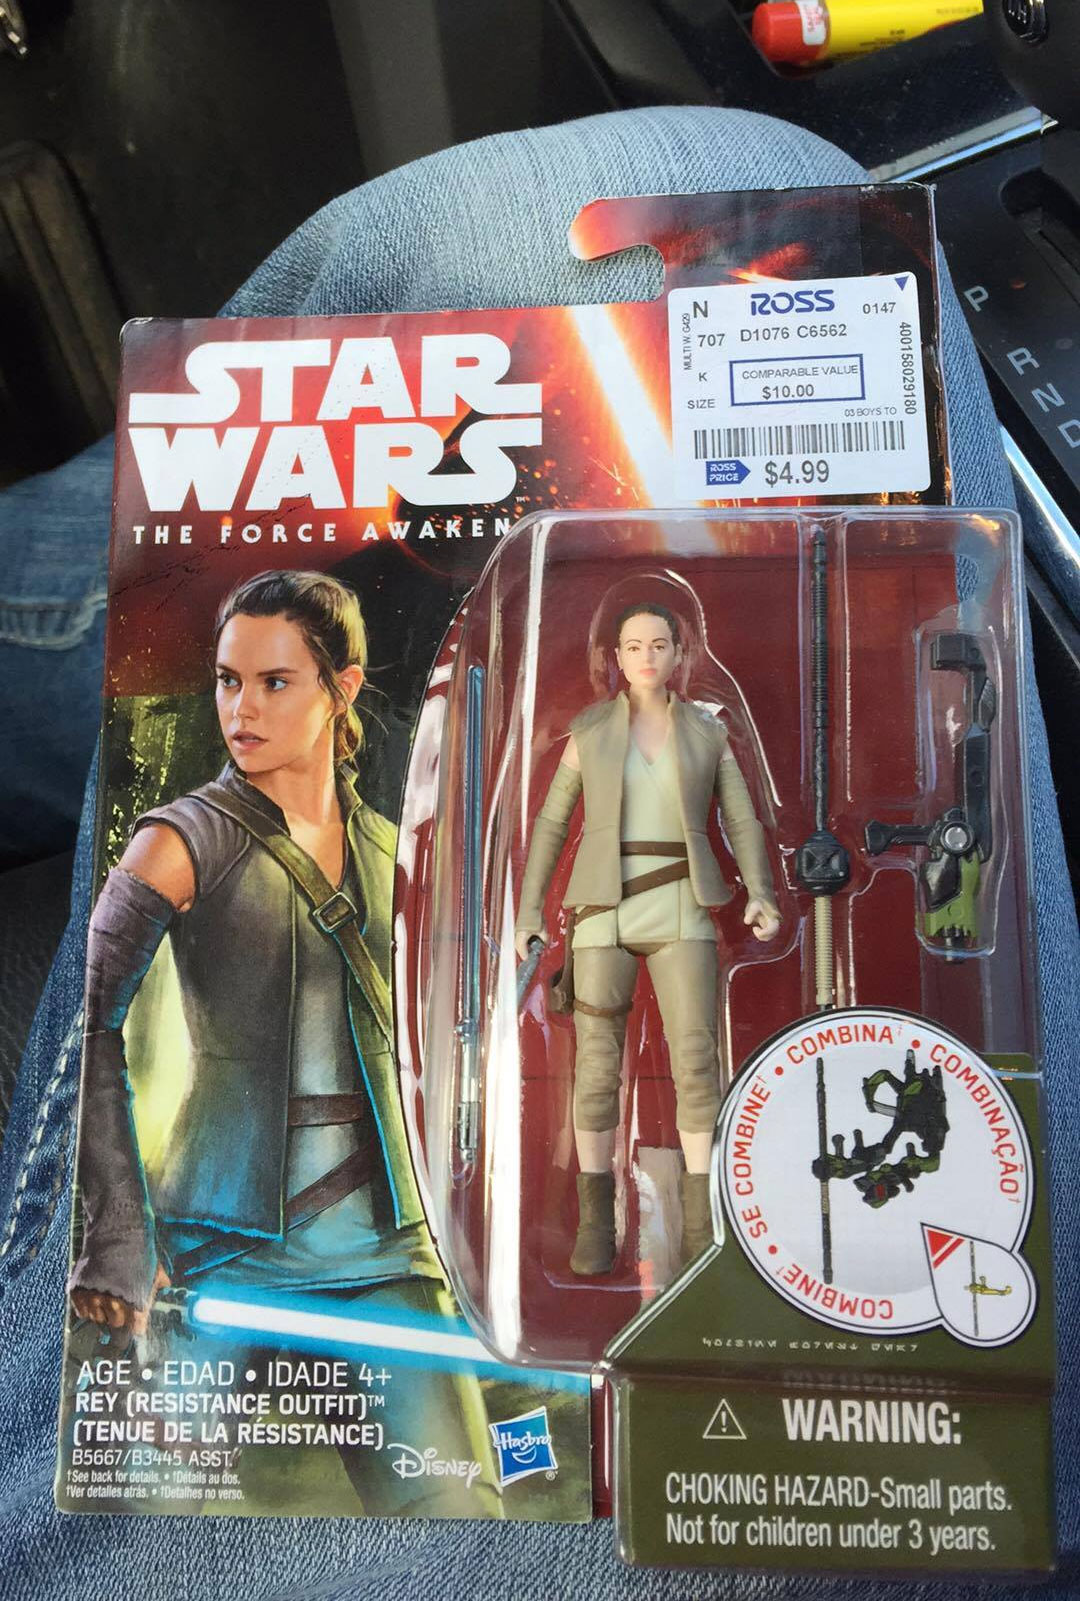 Star Wars Rey At Ross